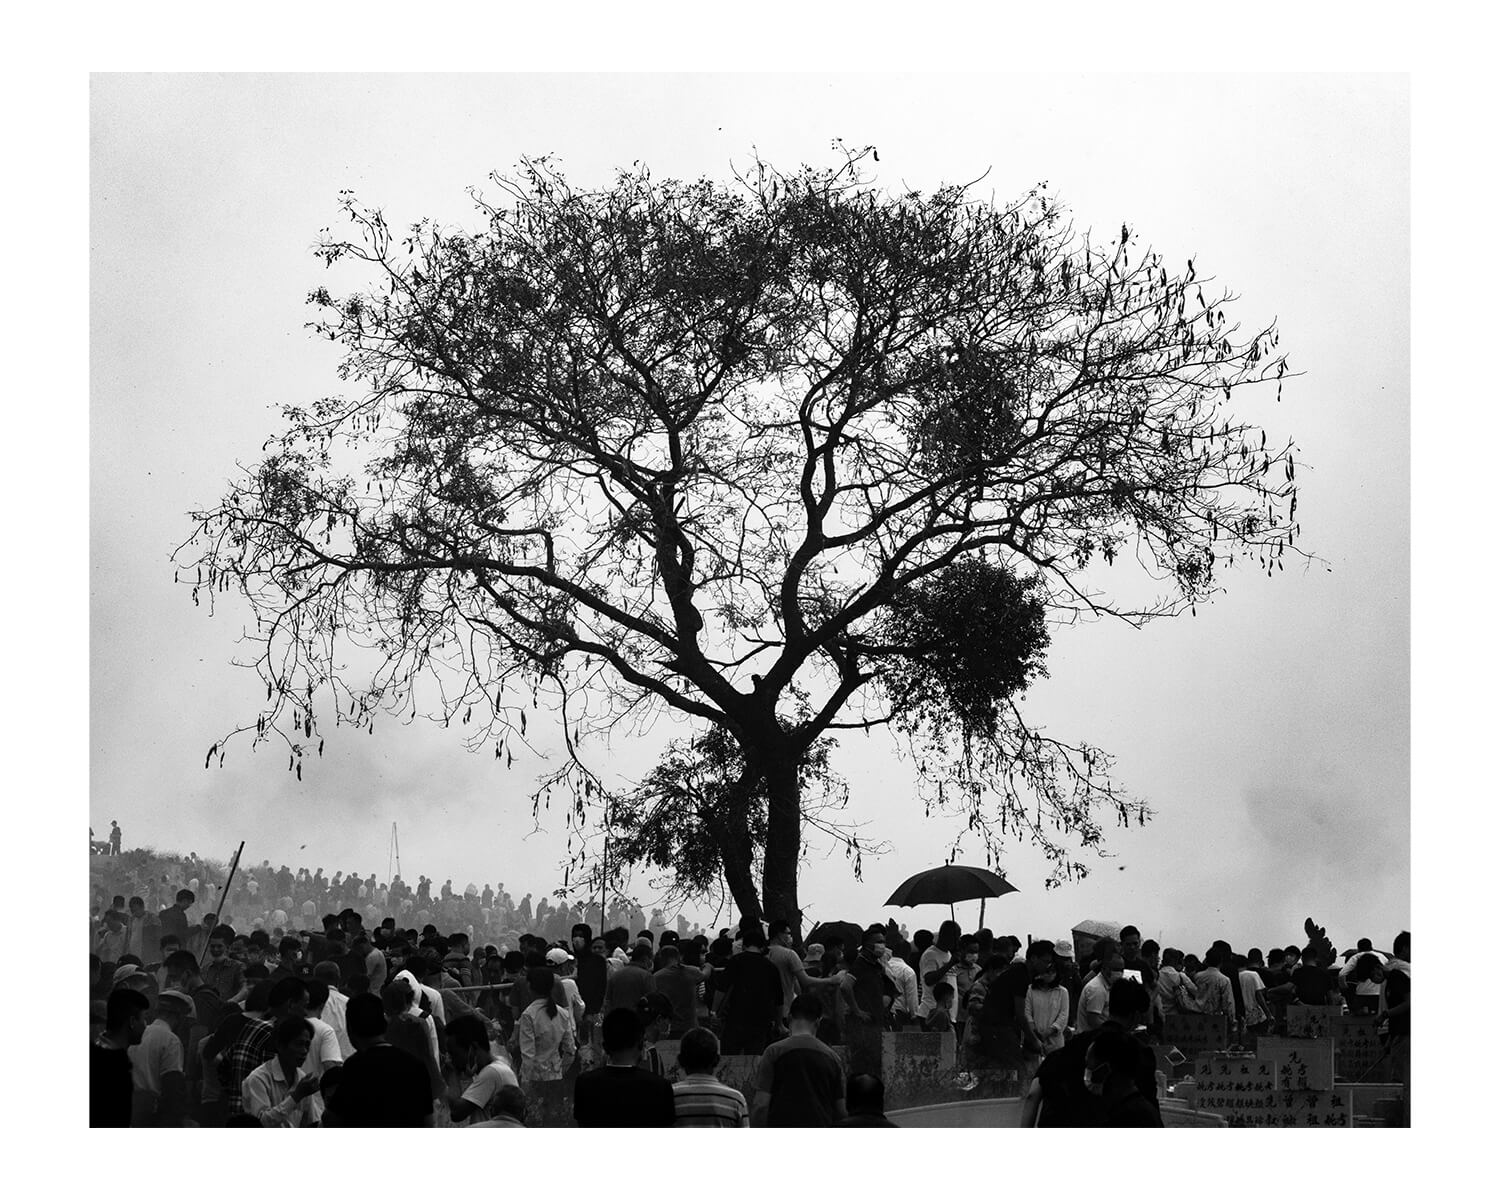 Tony Mak - To The West Of The Solitary Sea. Giant tree above crowds of people